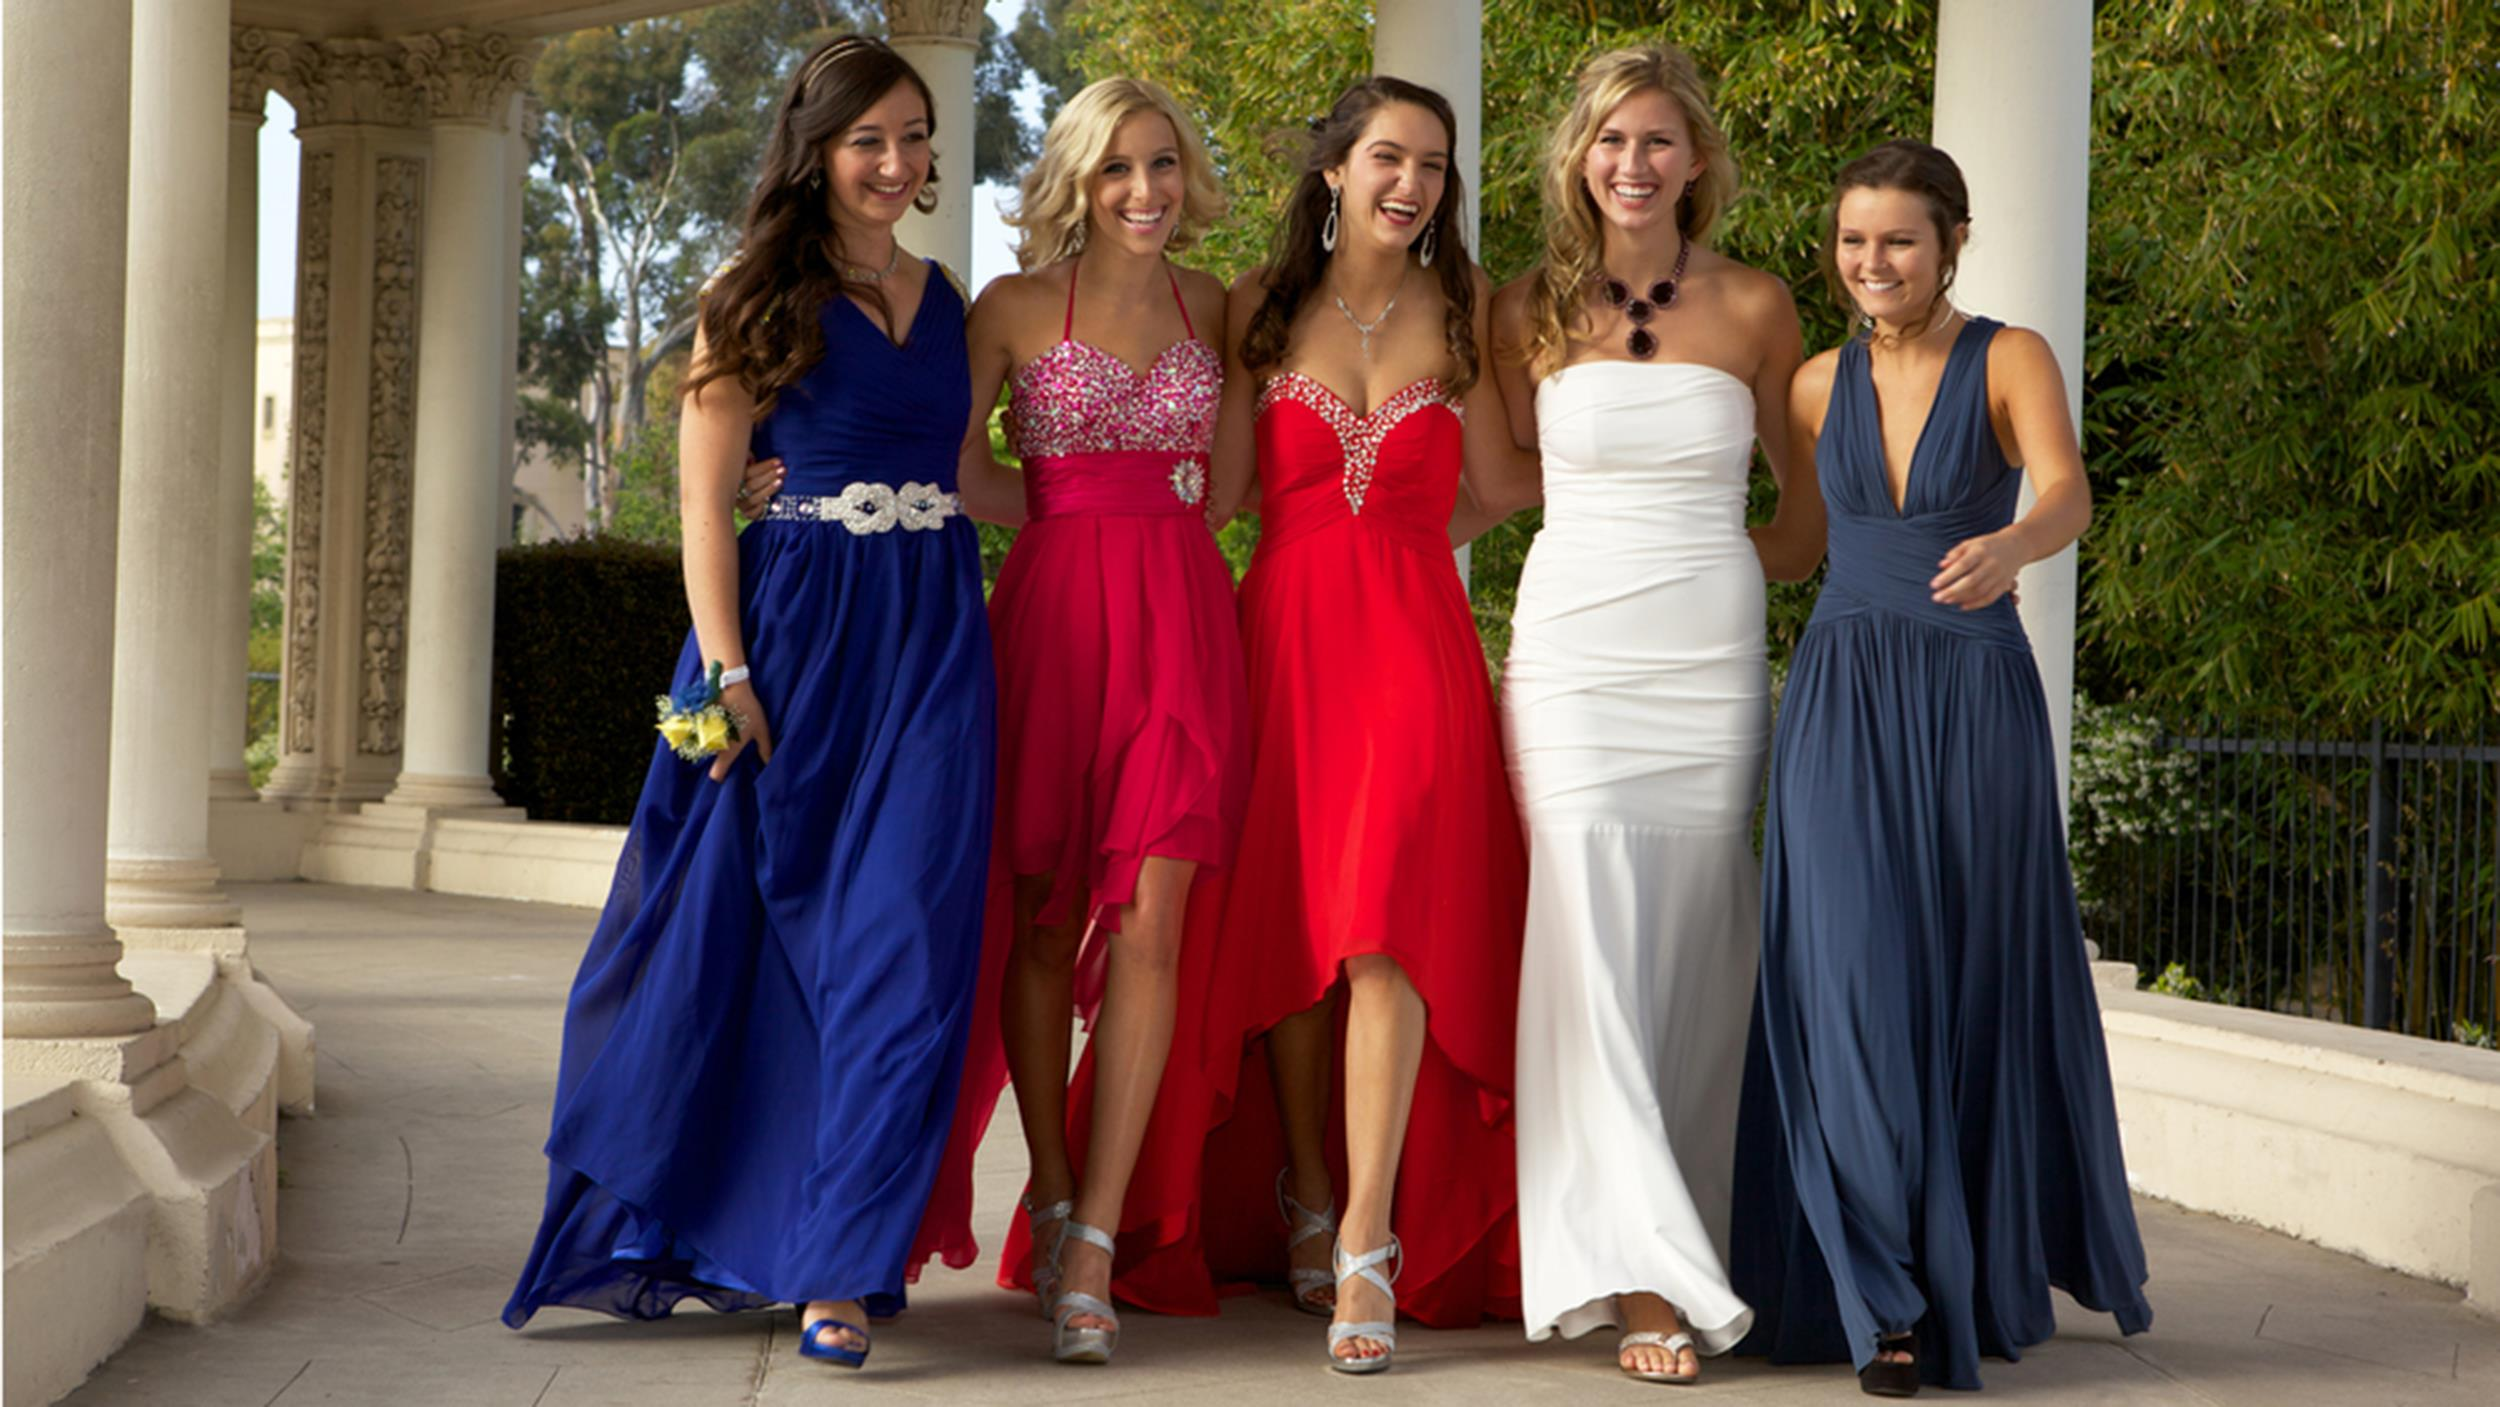 School Requires Preapproved Prom Dresses Sparks Angry Reaction From